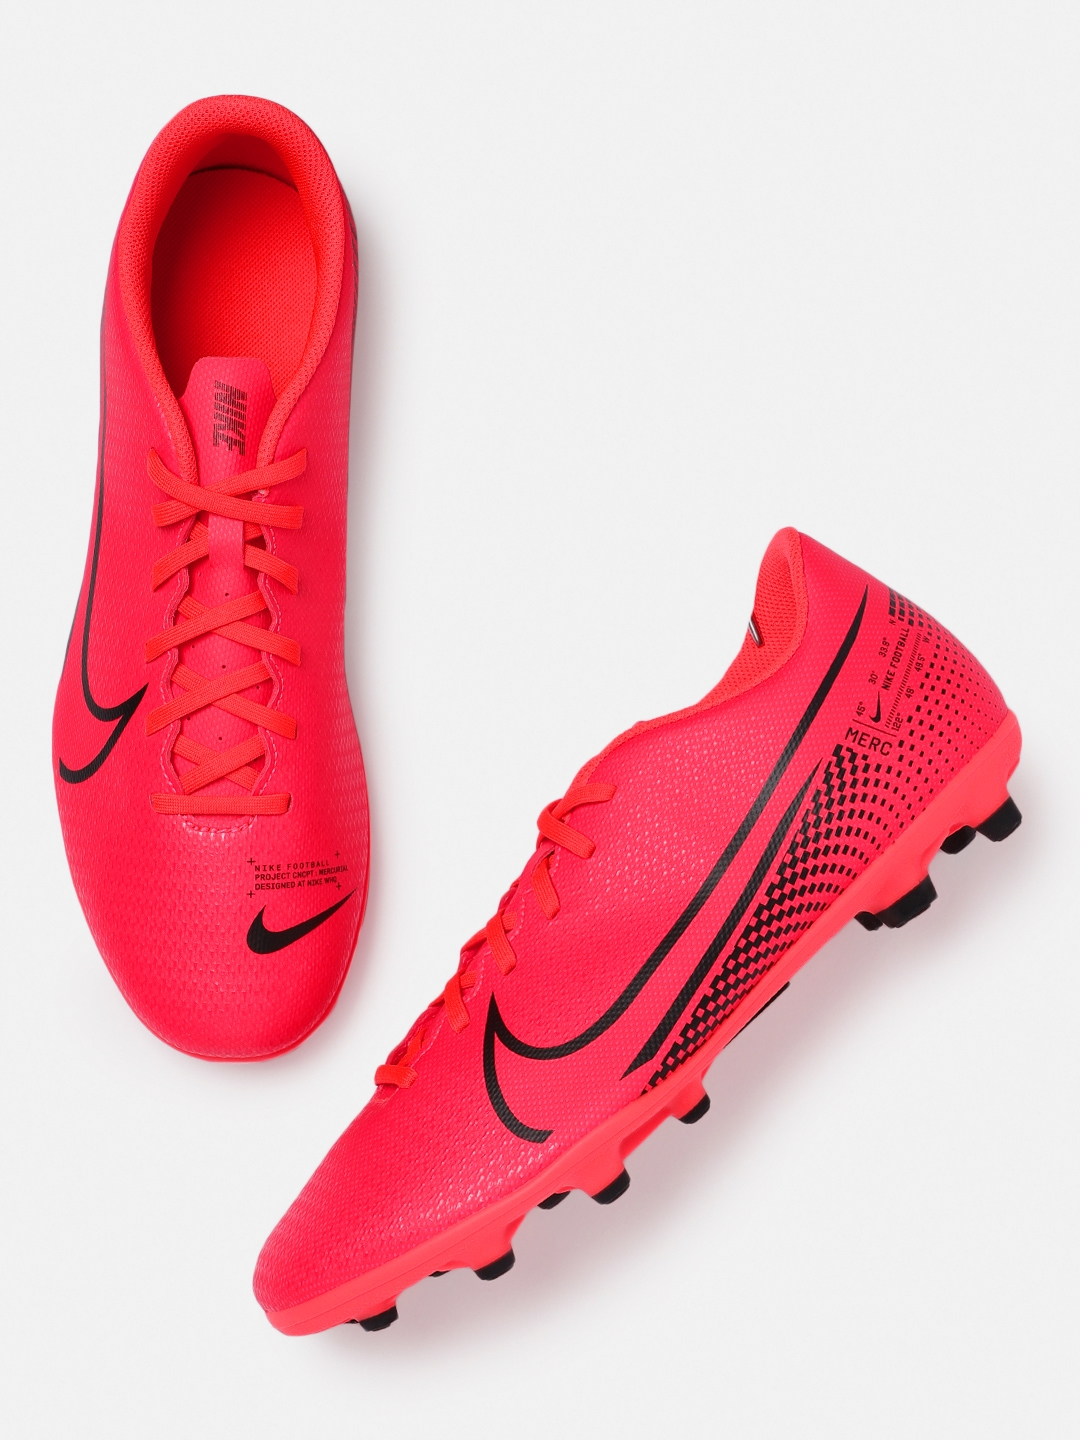 Nike Unisex Red VAPOR 13 CLUB FG Football Shoes